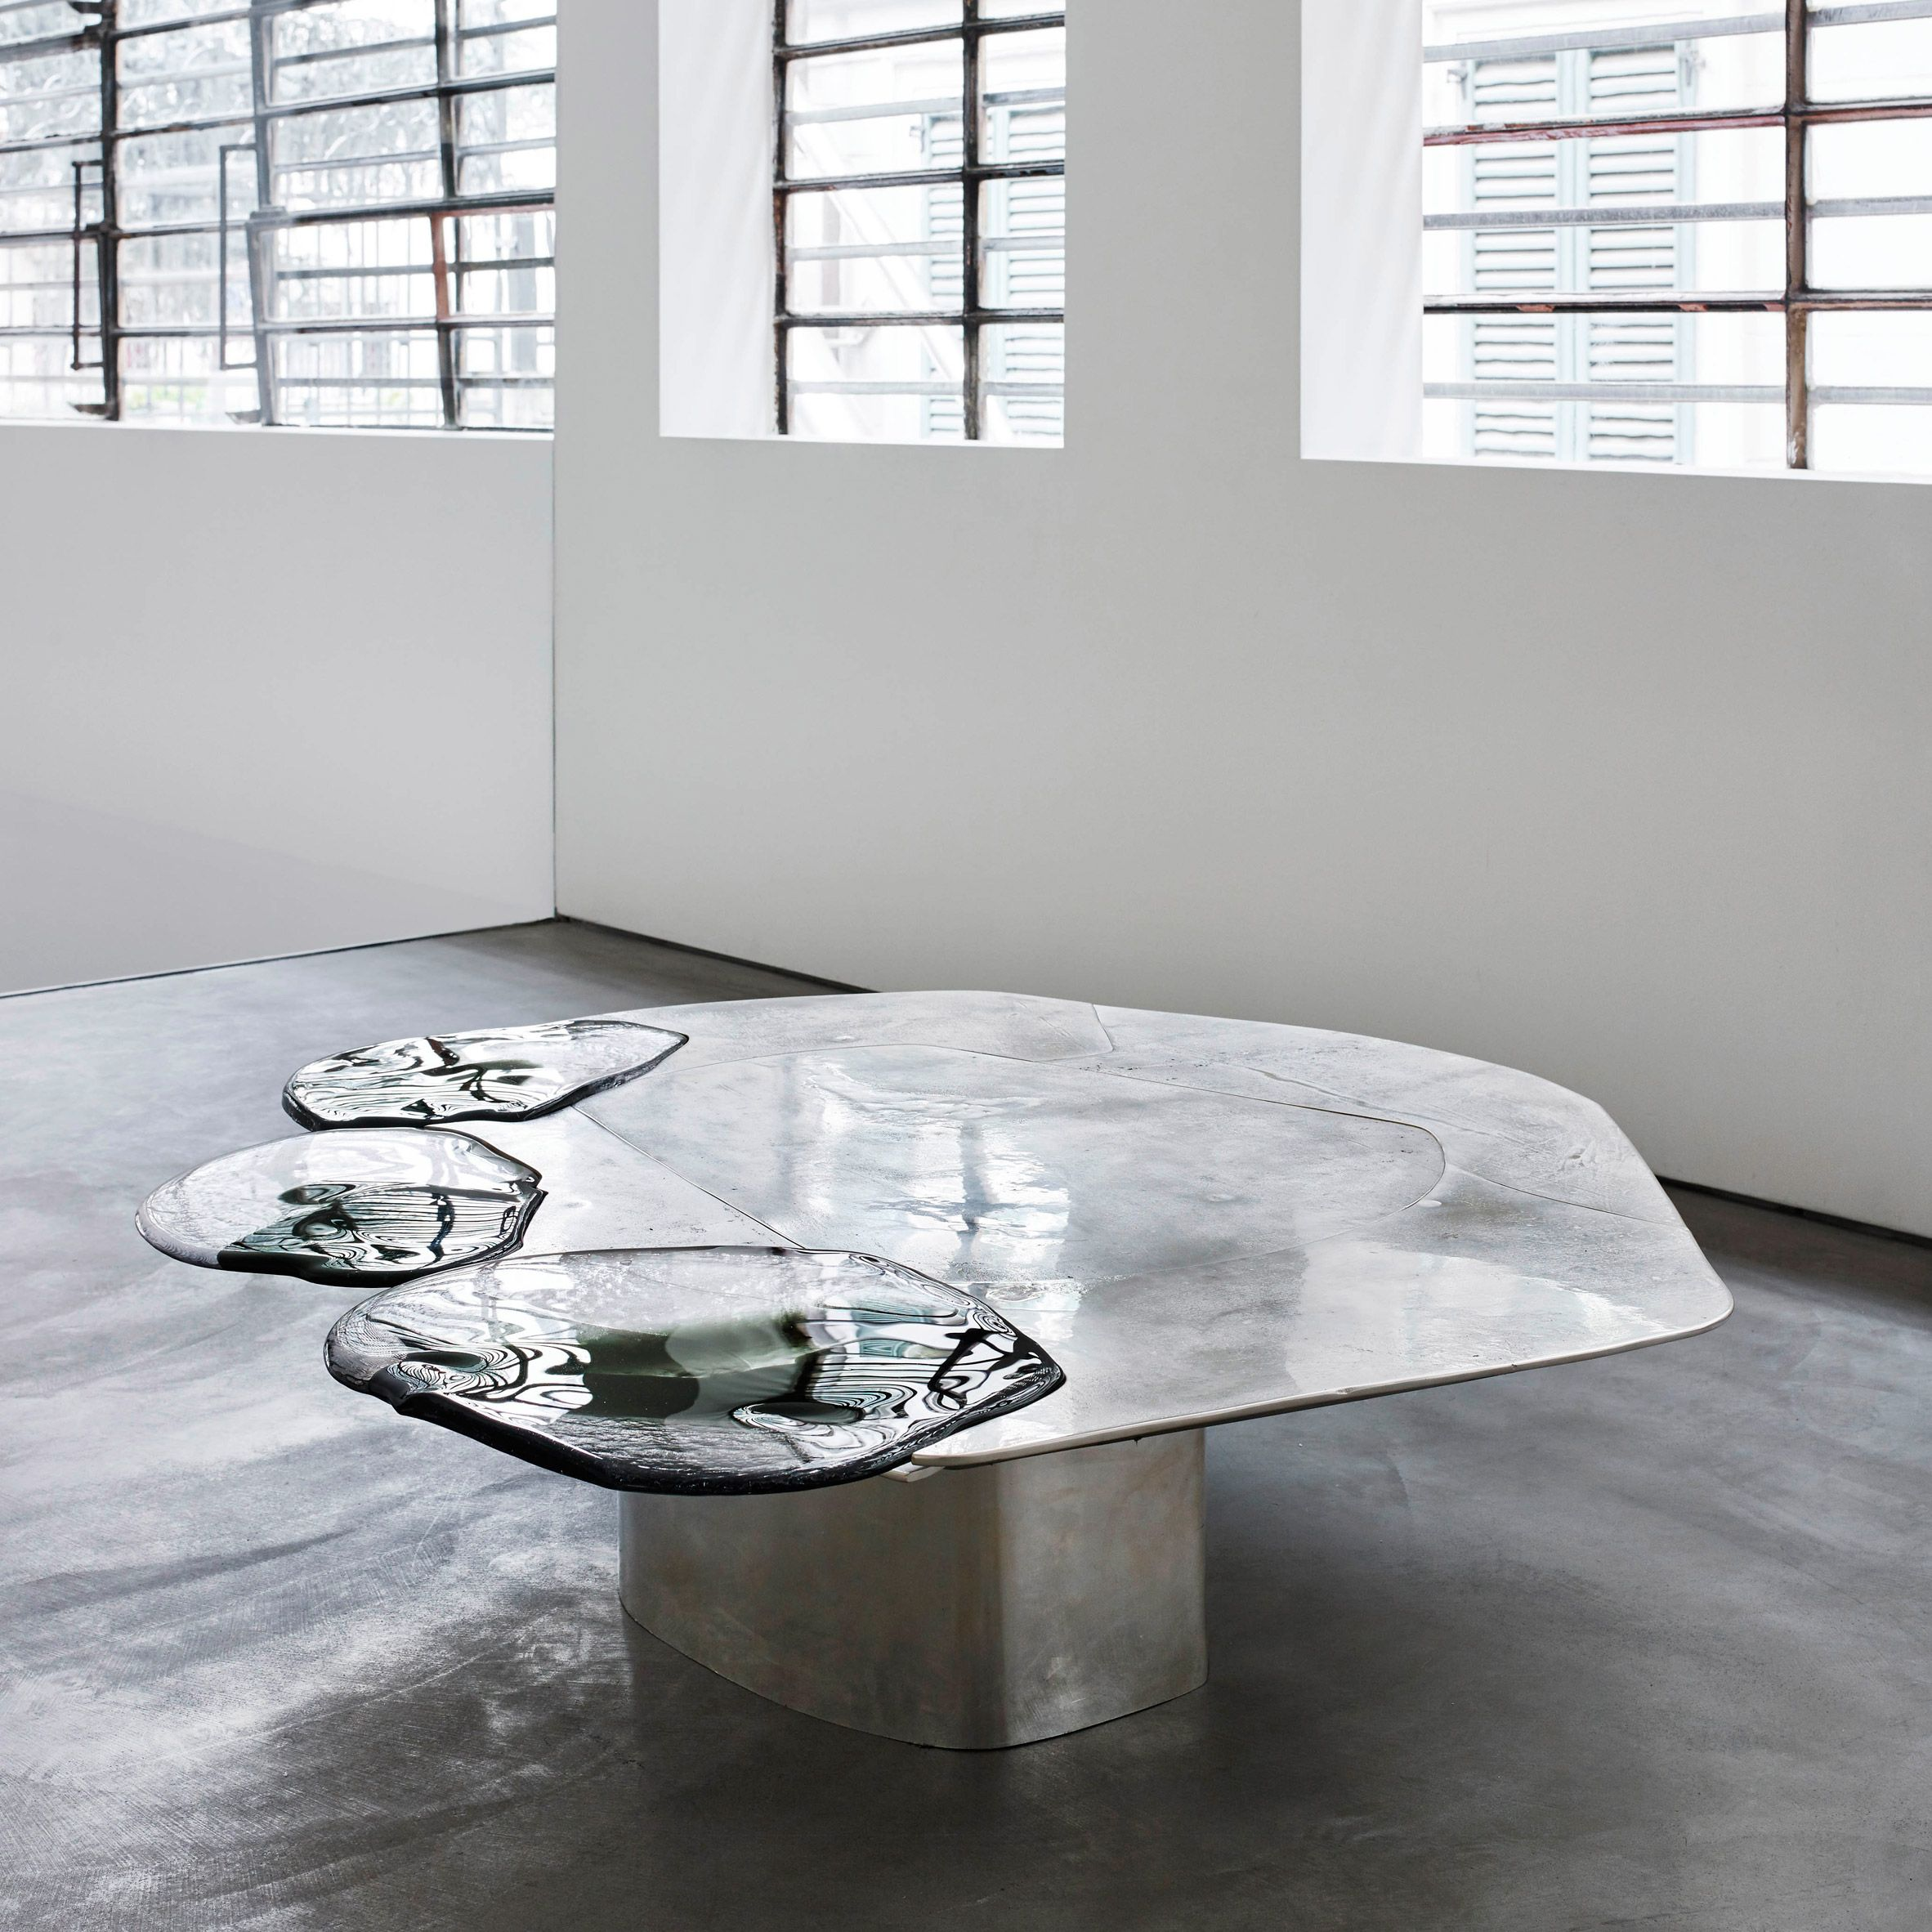 glass form furniture de cotiis pinterest pools of metal and glass form vincenzo de cotiis baroquisme furniture surfaces found in this